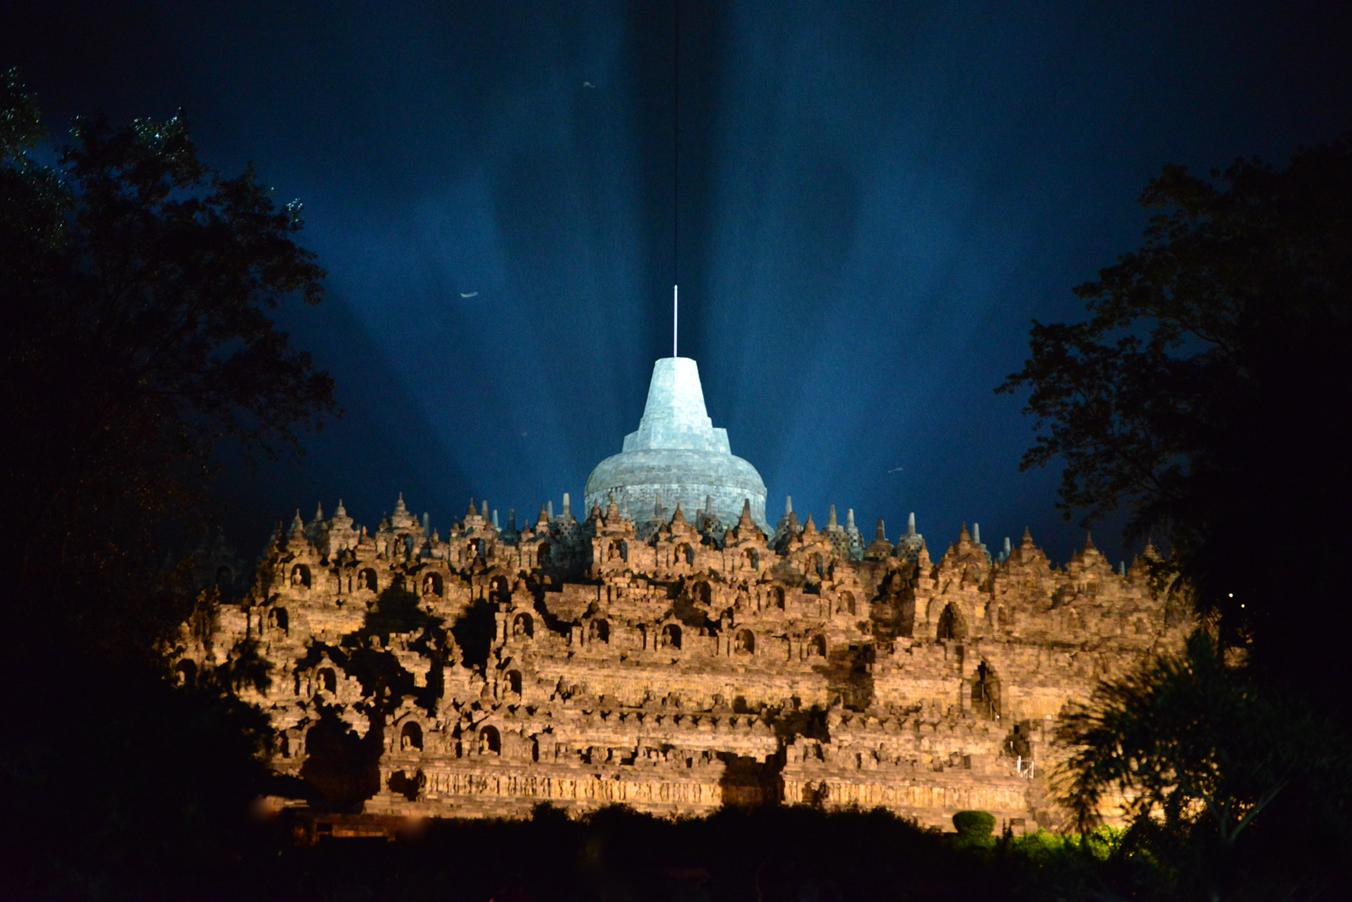 borobodur indonesia big stupa light